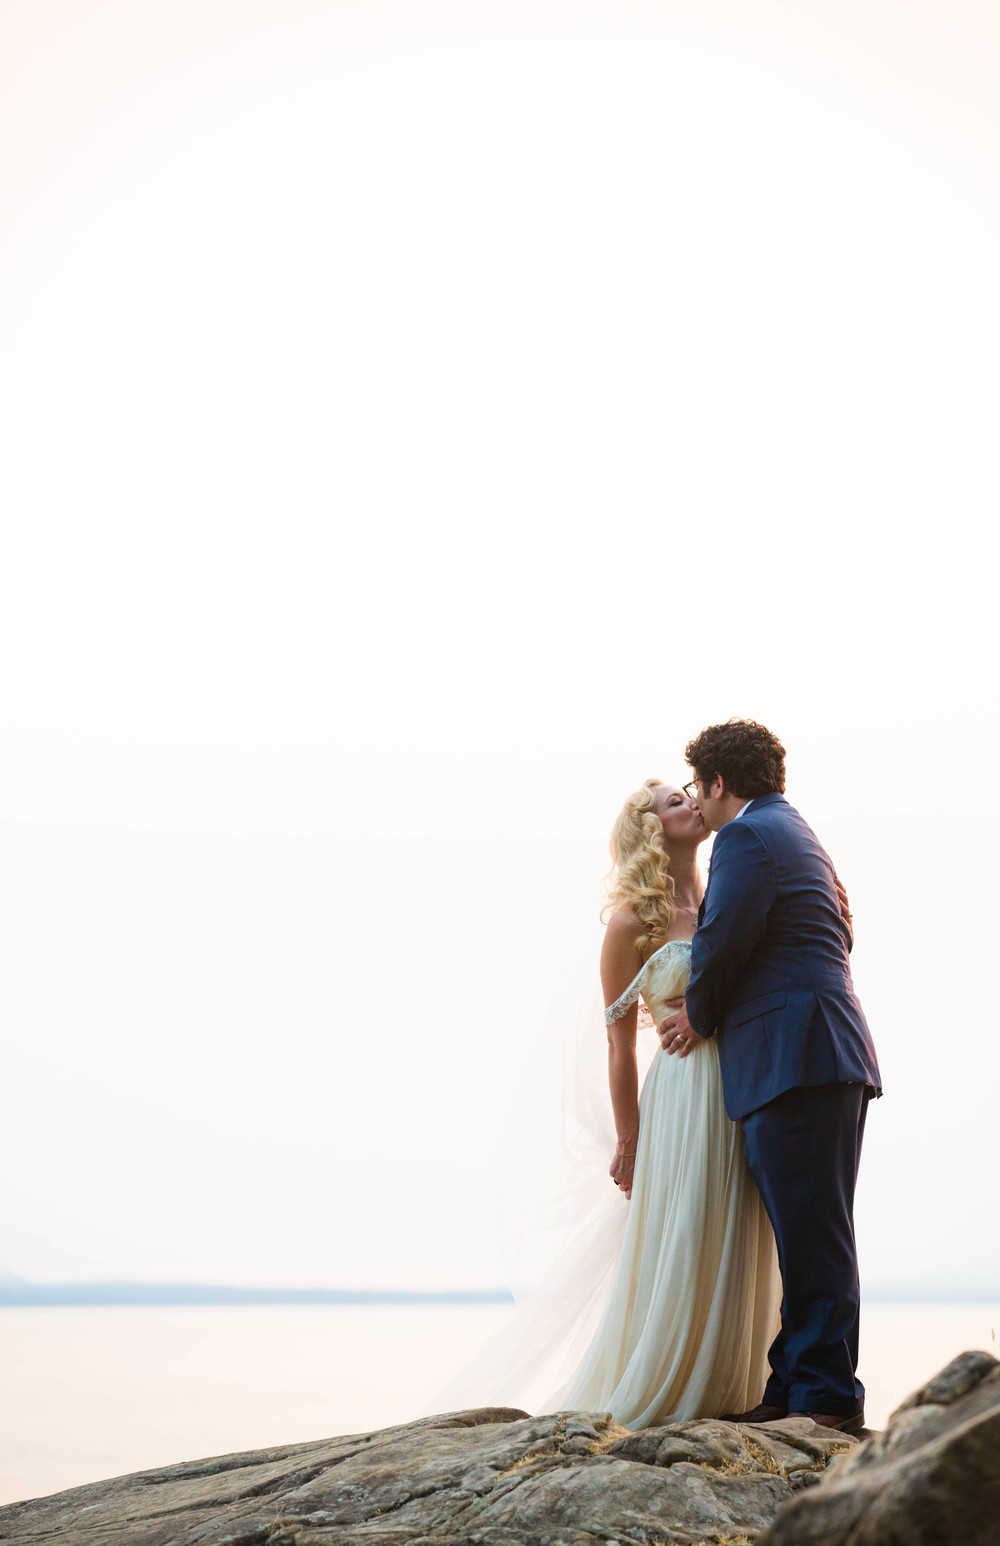 Courtney+Matt_Bellingham+Wedding_Seattle+Wedding+Photographer260.jpg